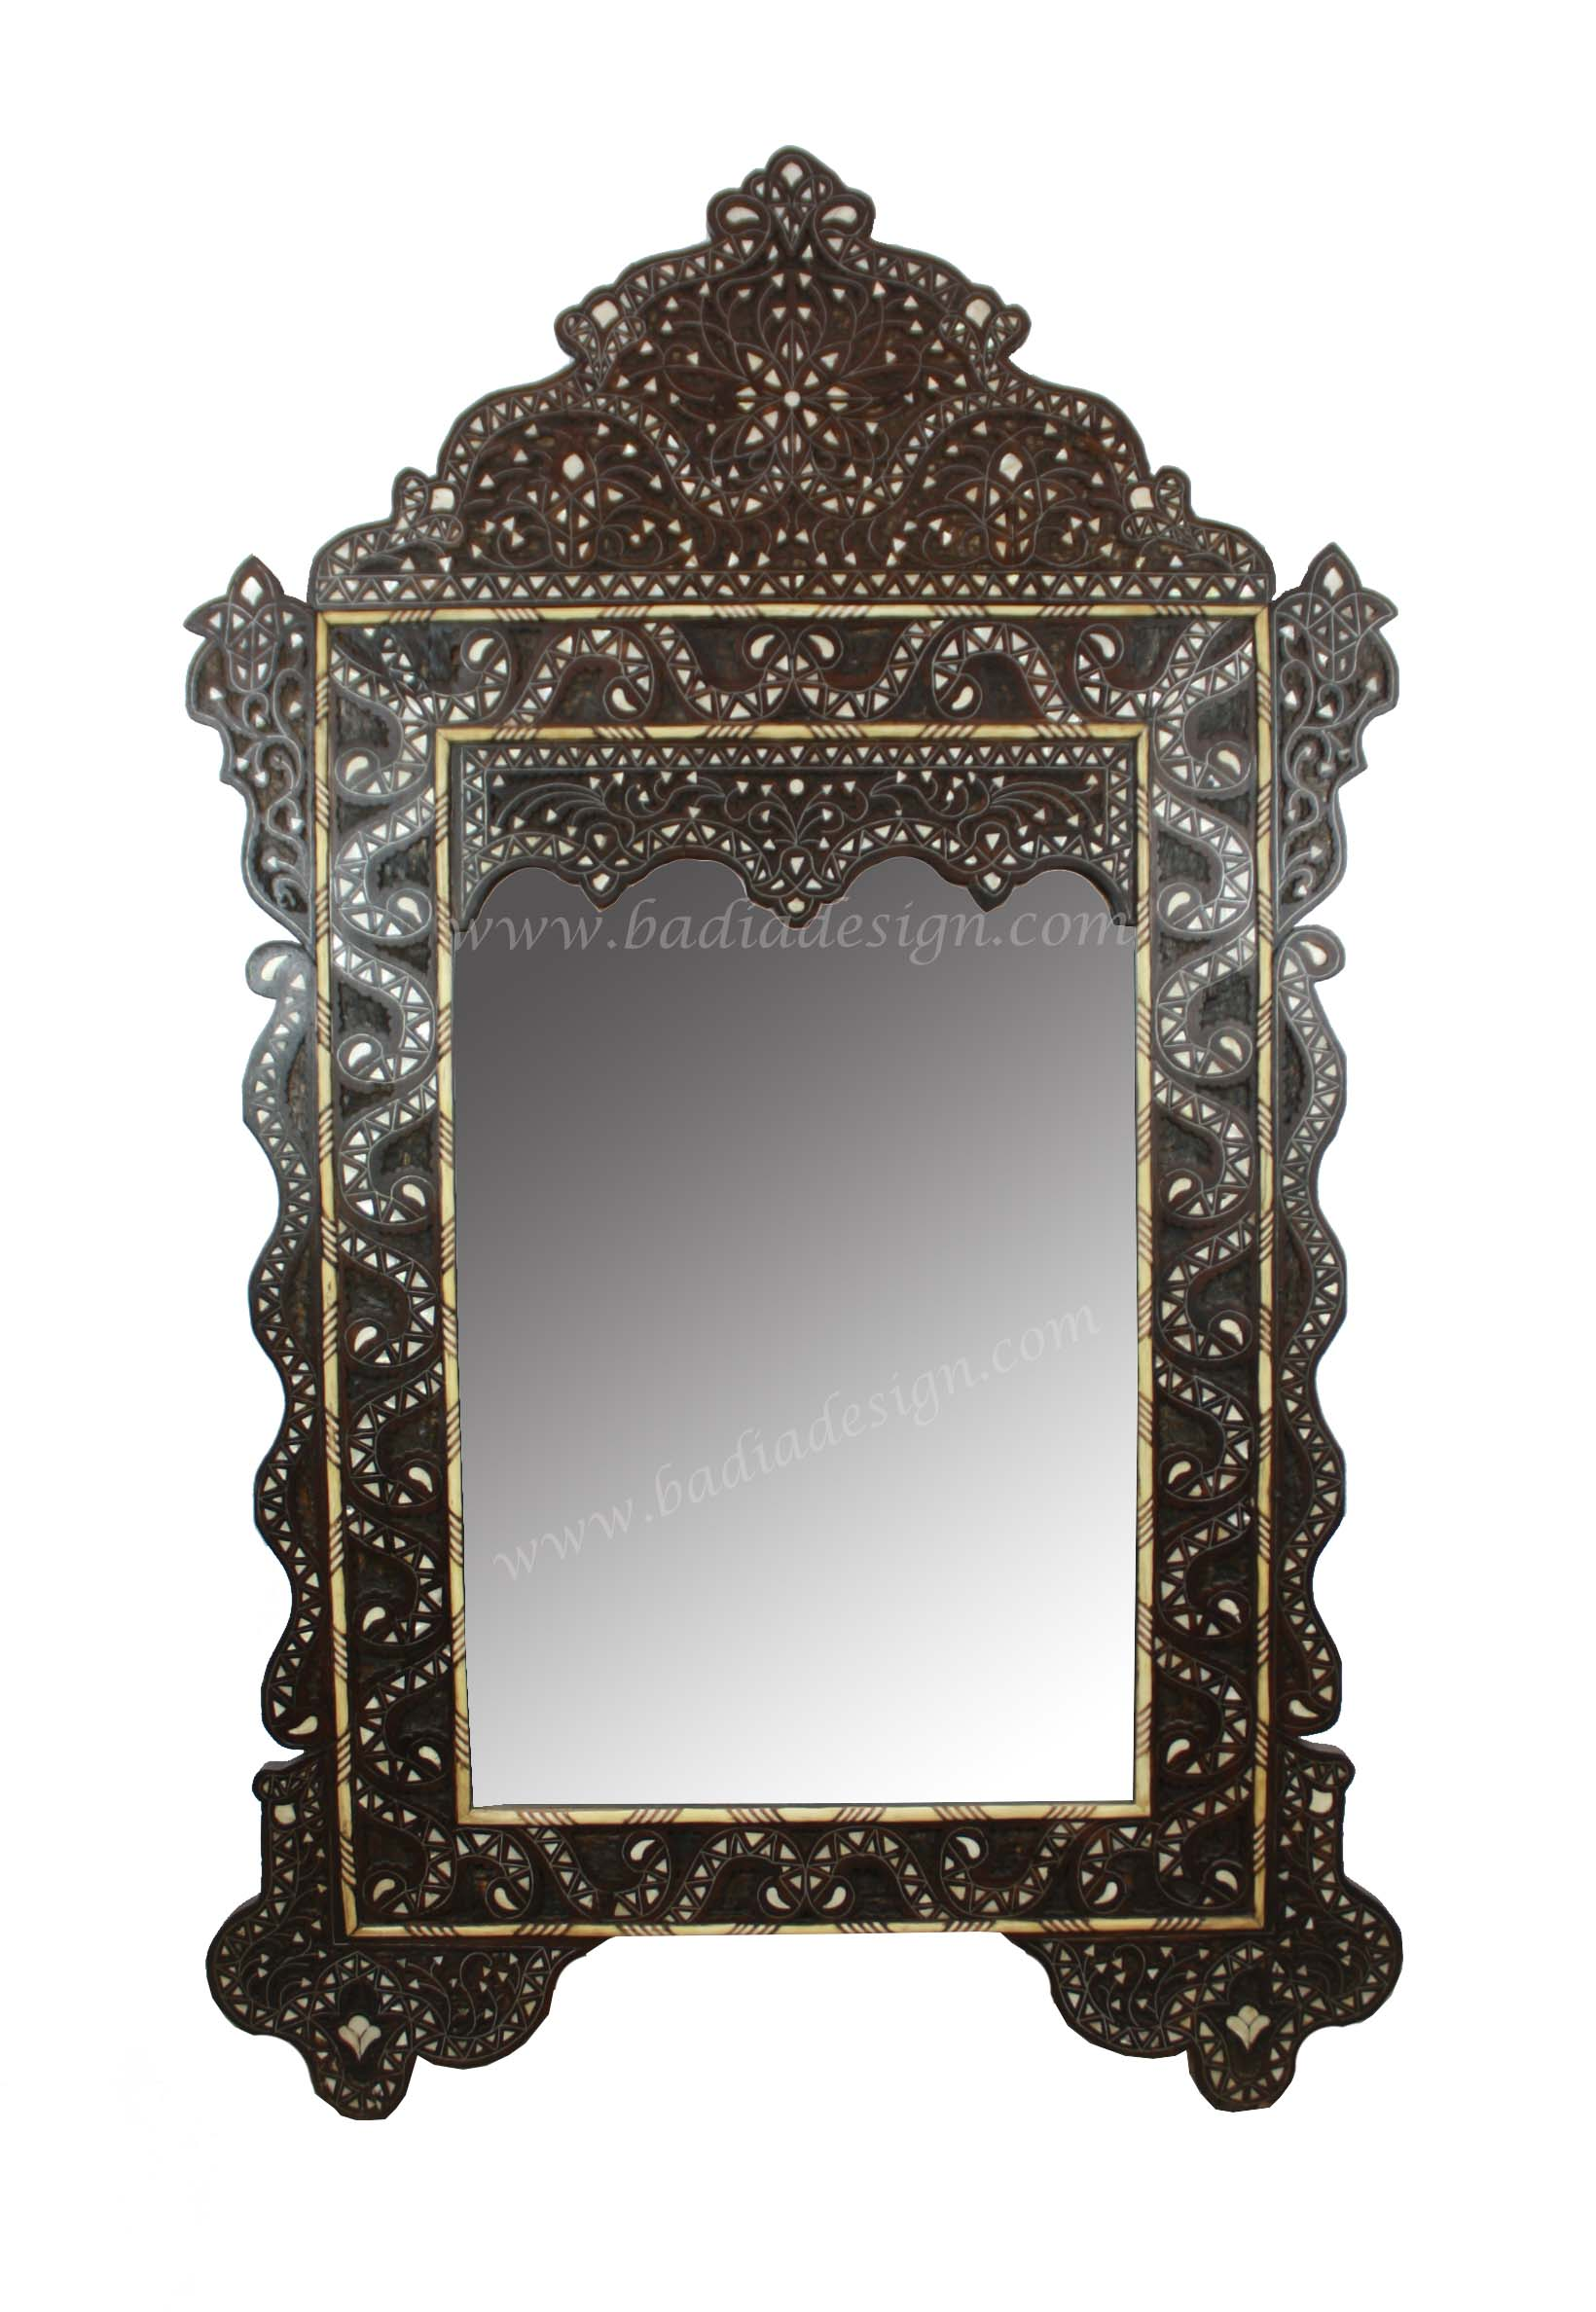 moroccan-bone-inlay-mirror-m-mop031.jpg